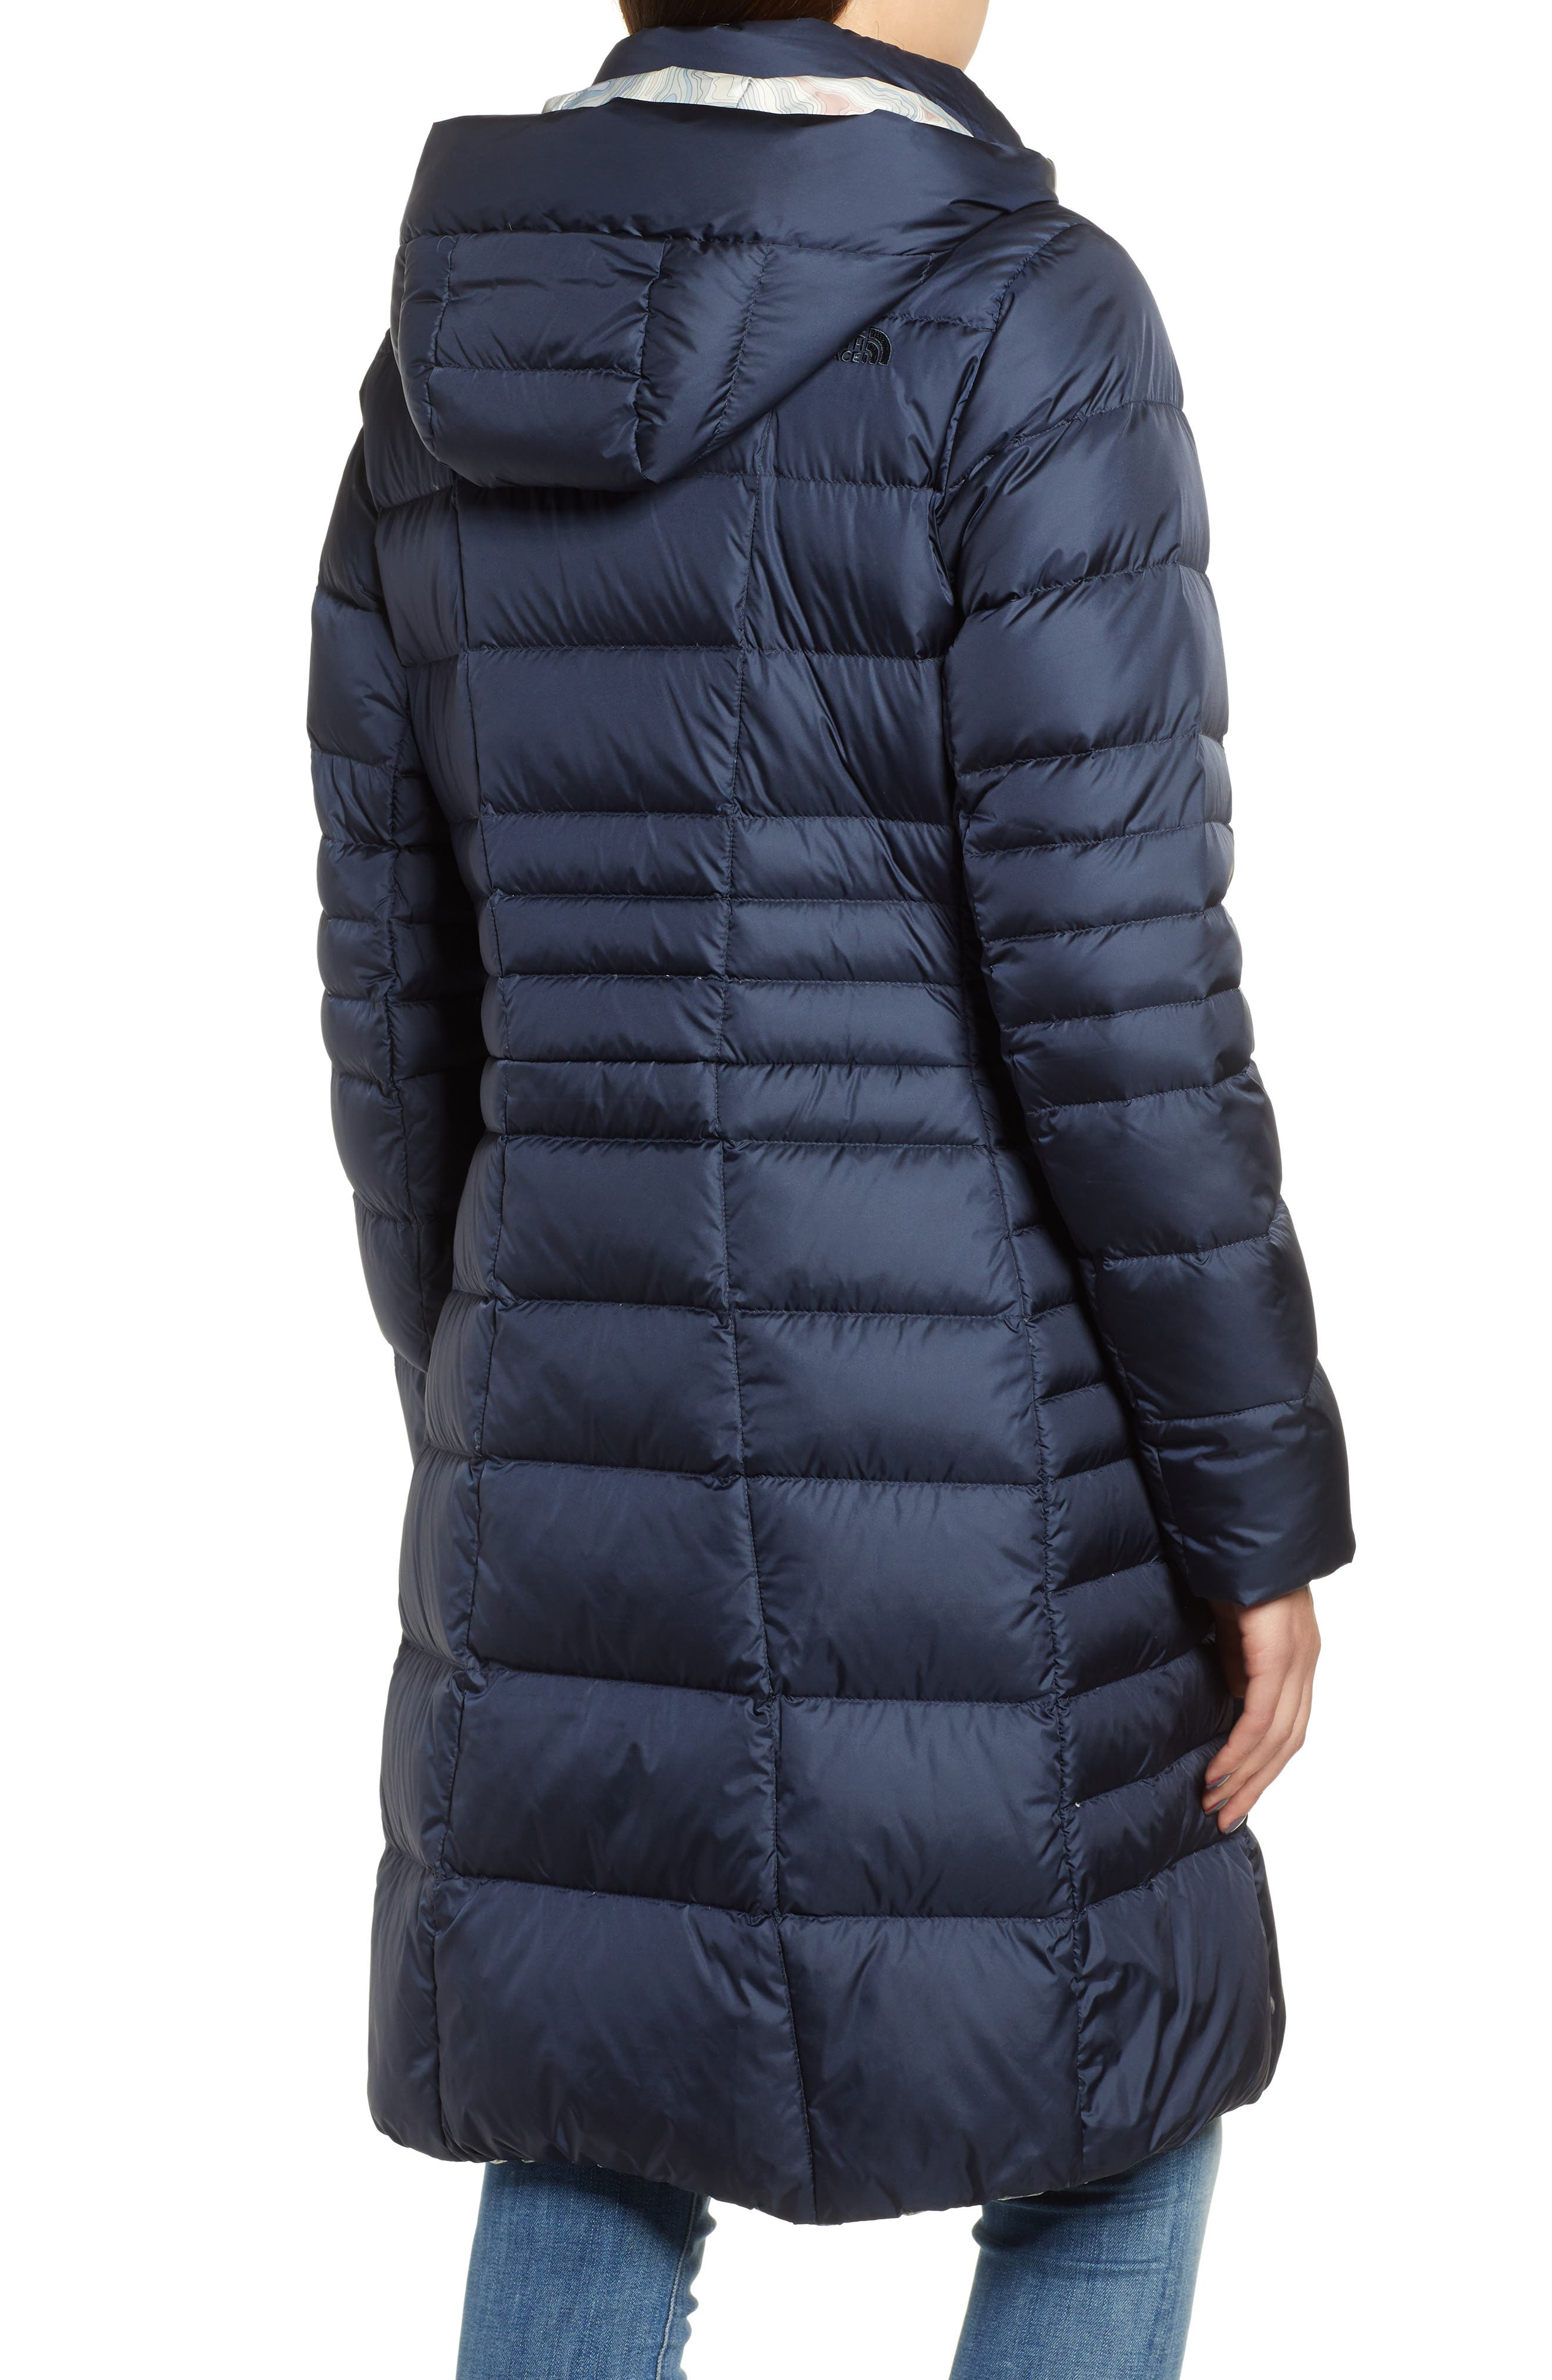 THE NORTH FACE, Metropolis II Hooded Water Resistant Down Parka, Alternate thumbnail 2, color, URBAN NAVY/ MULTI TOPO PRINT